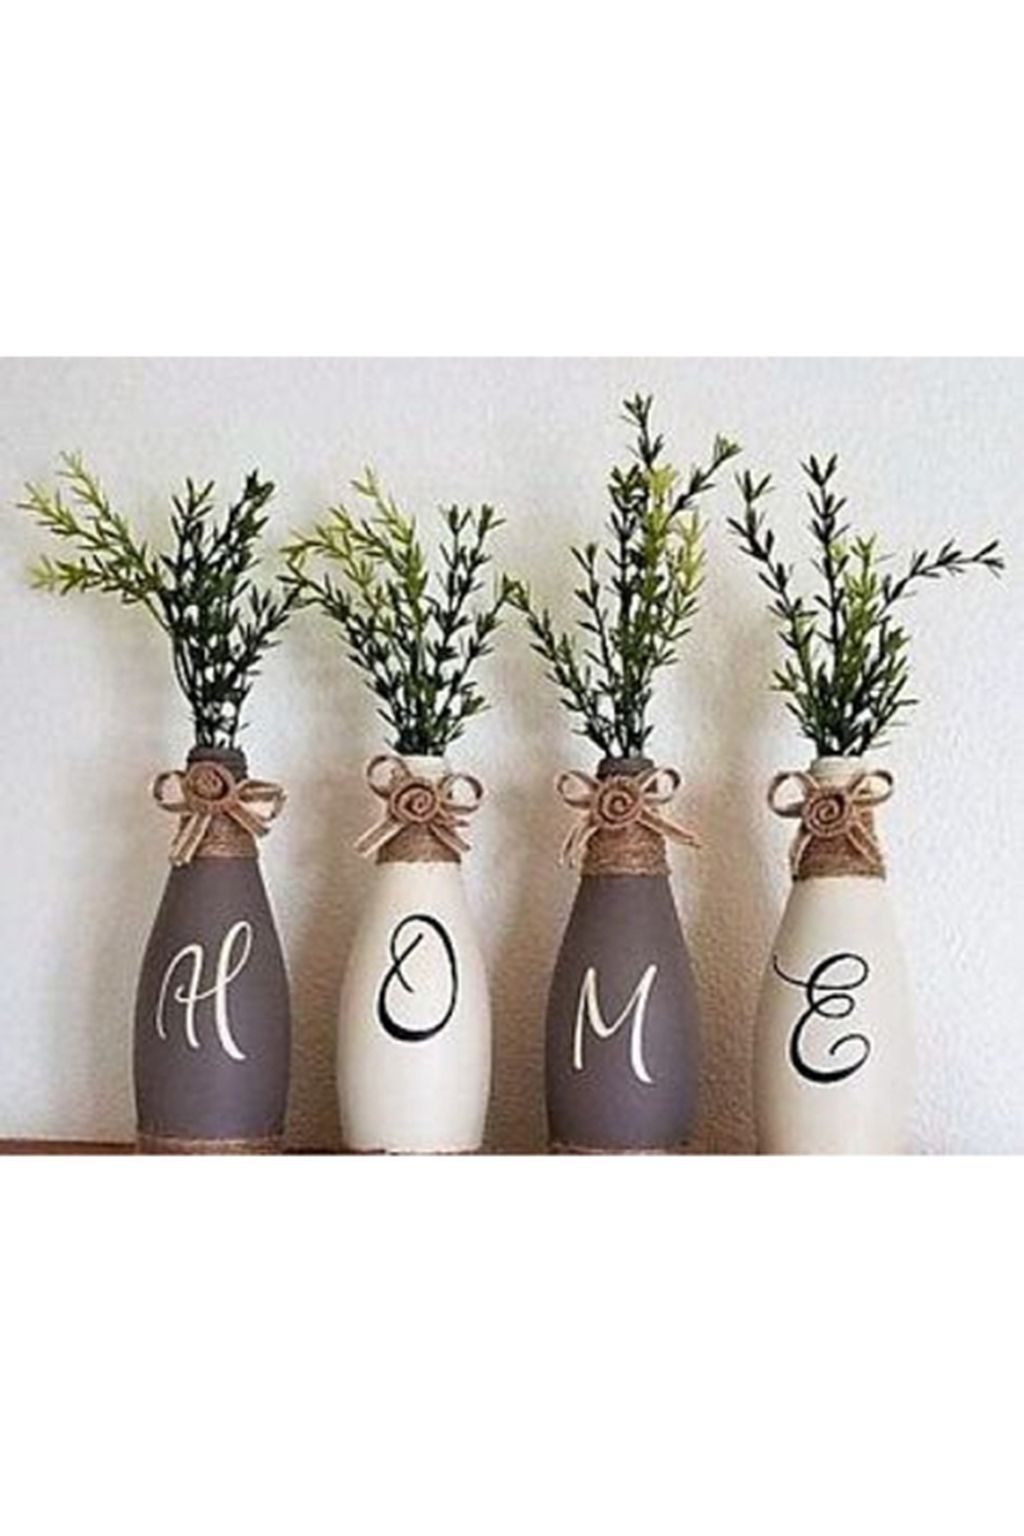 Fascinating Diy Wine Bottle Design Ideas That You Will Like It 31